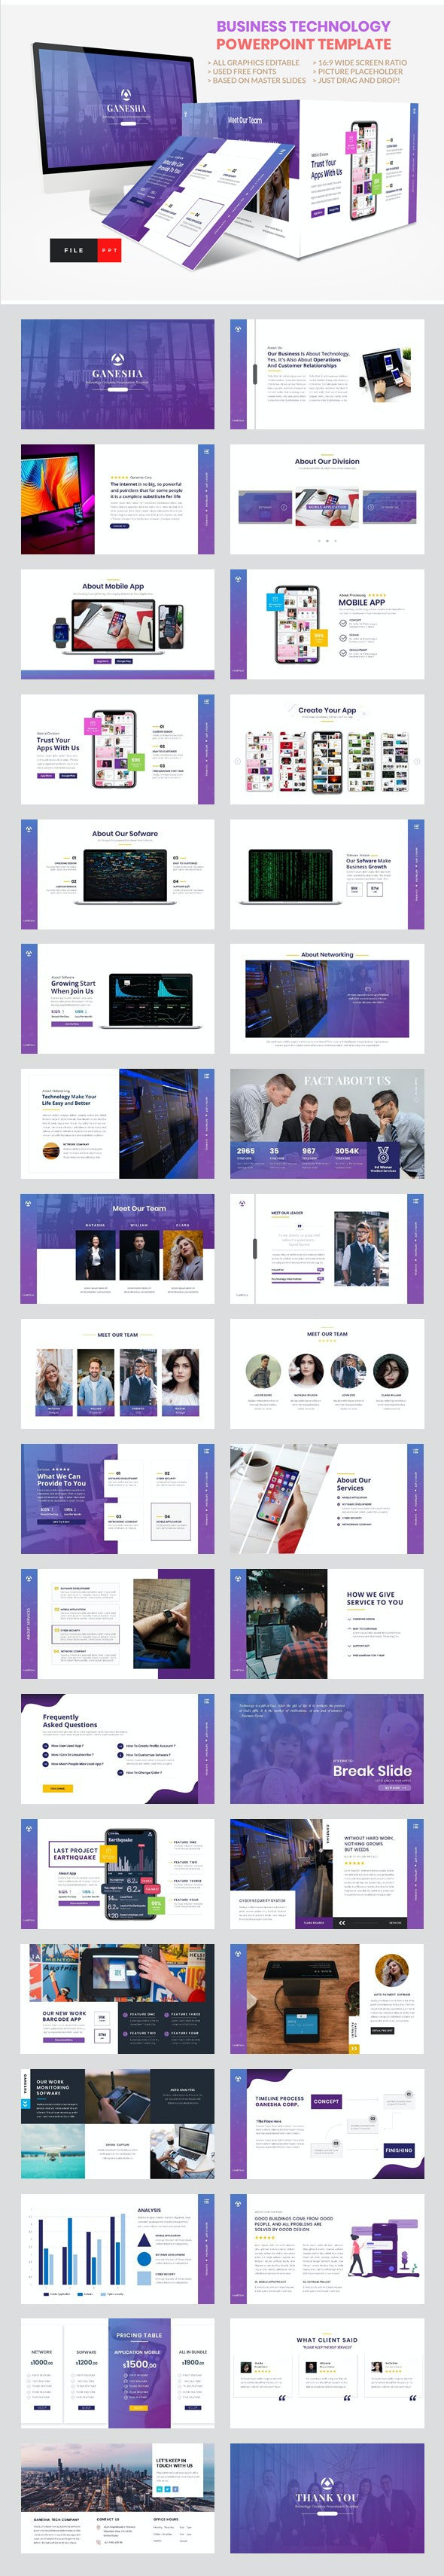 6 Best Presentation & Powerpoint Templates  for February 2019